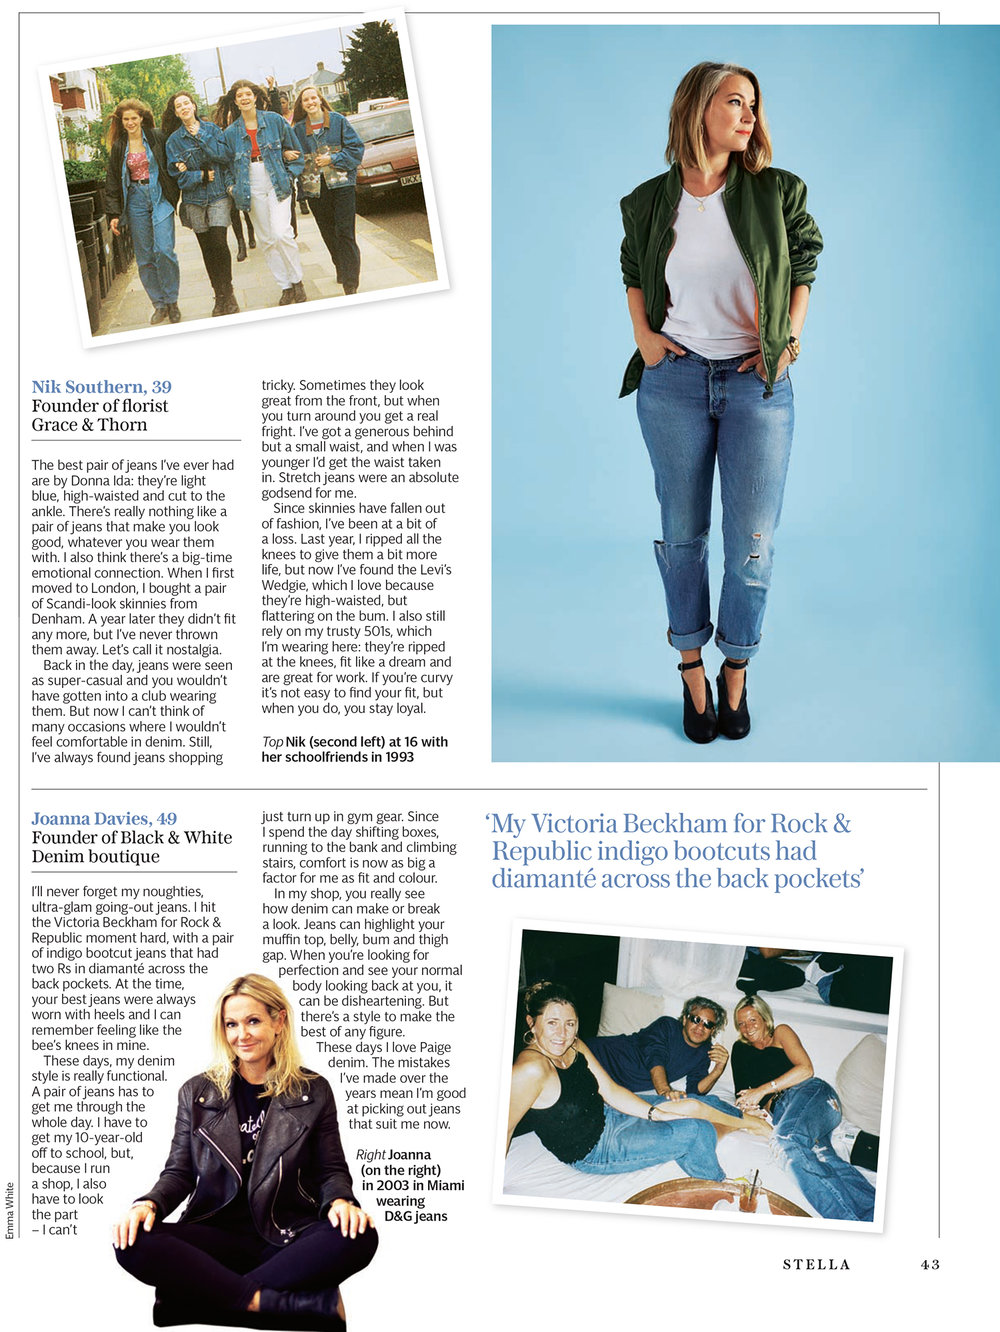 Sunday-Telegraph-Magazine_30-10-2016_Main_1st_p38-3.jpg